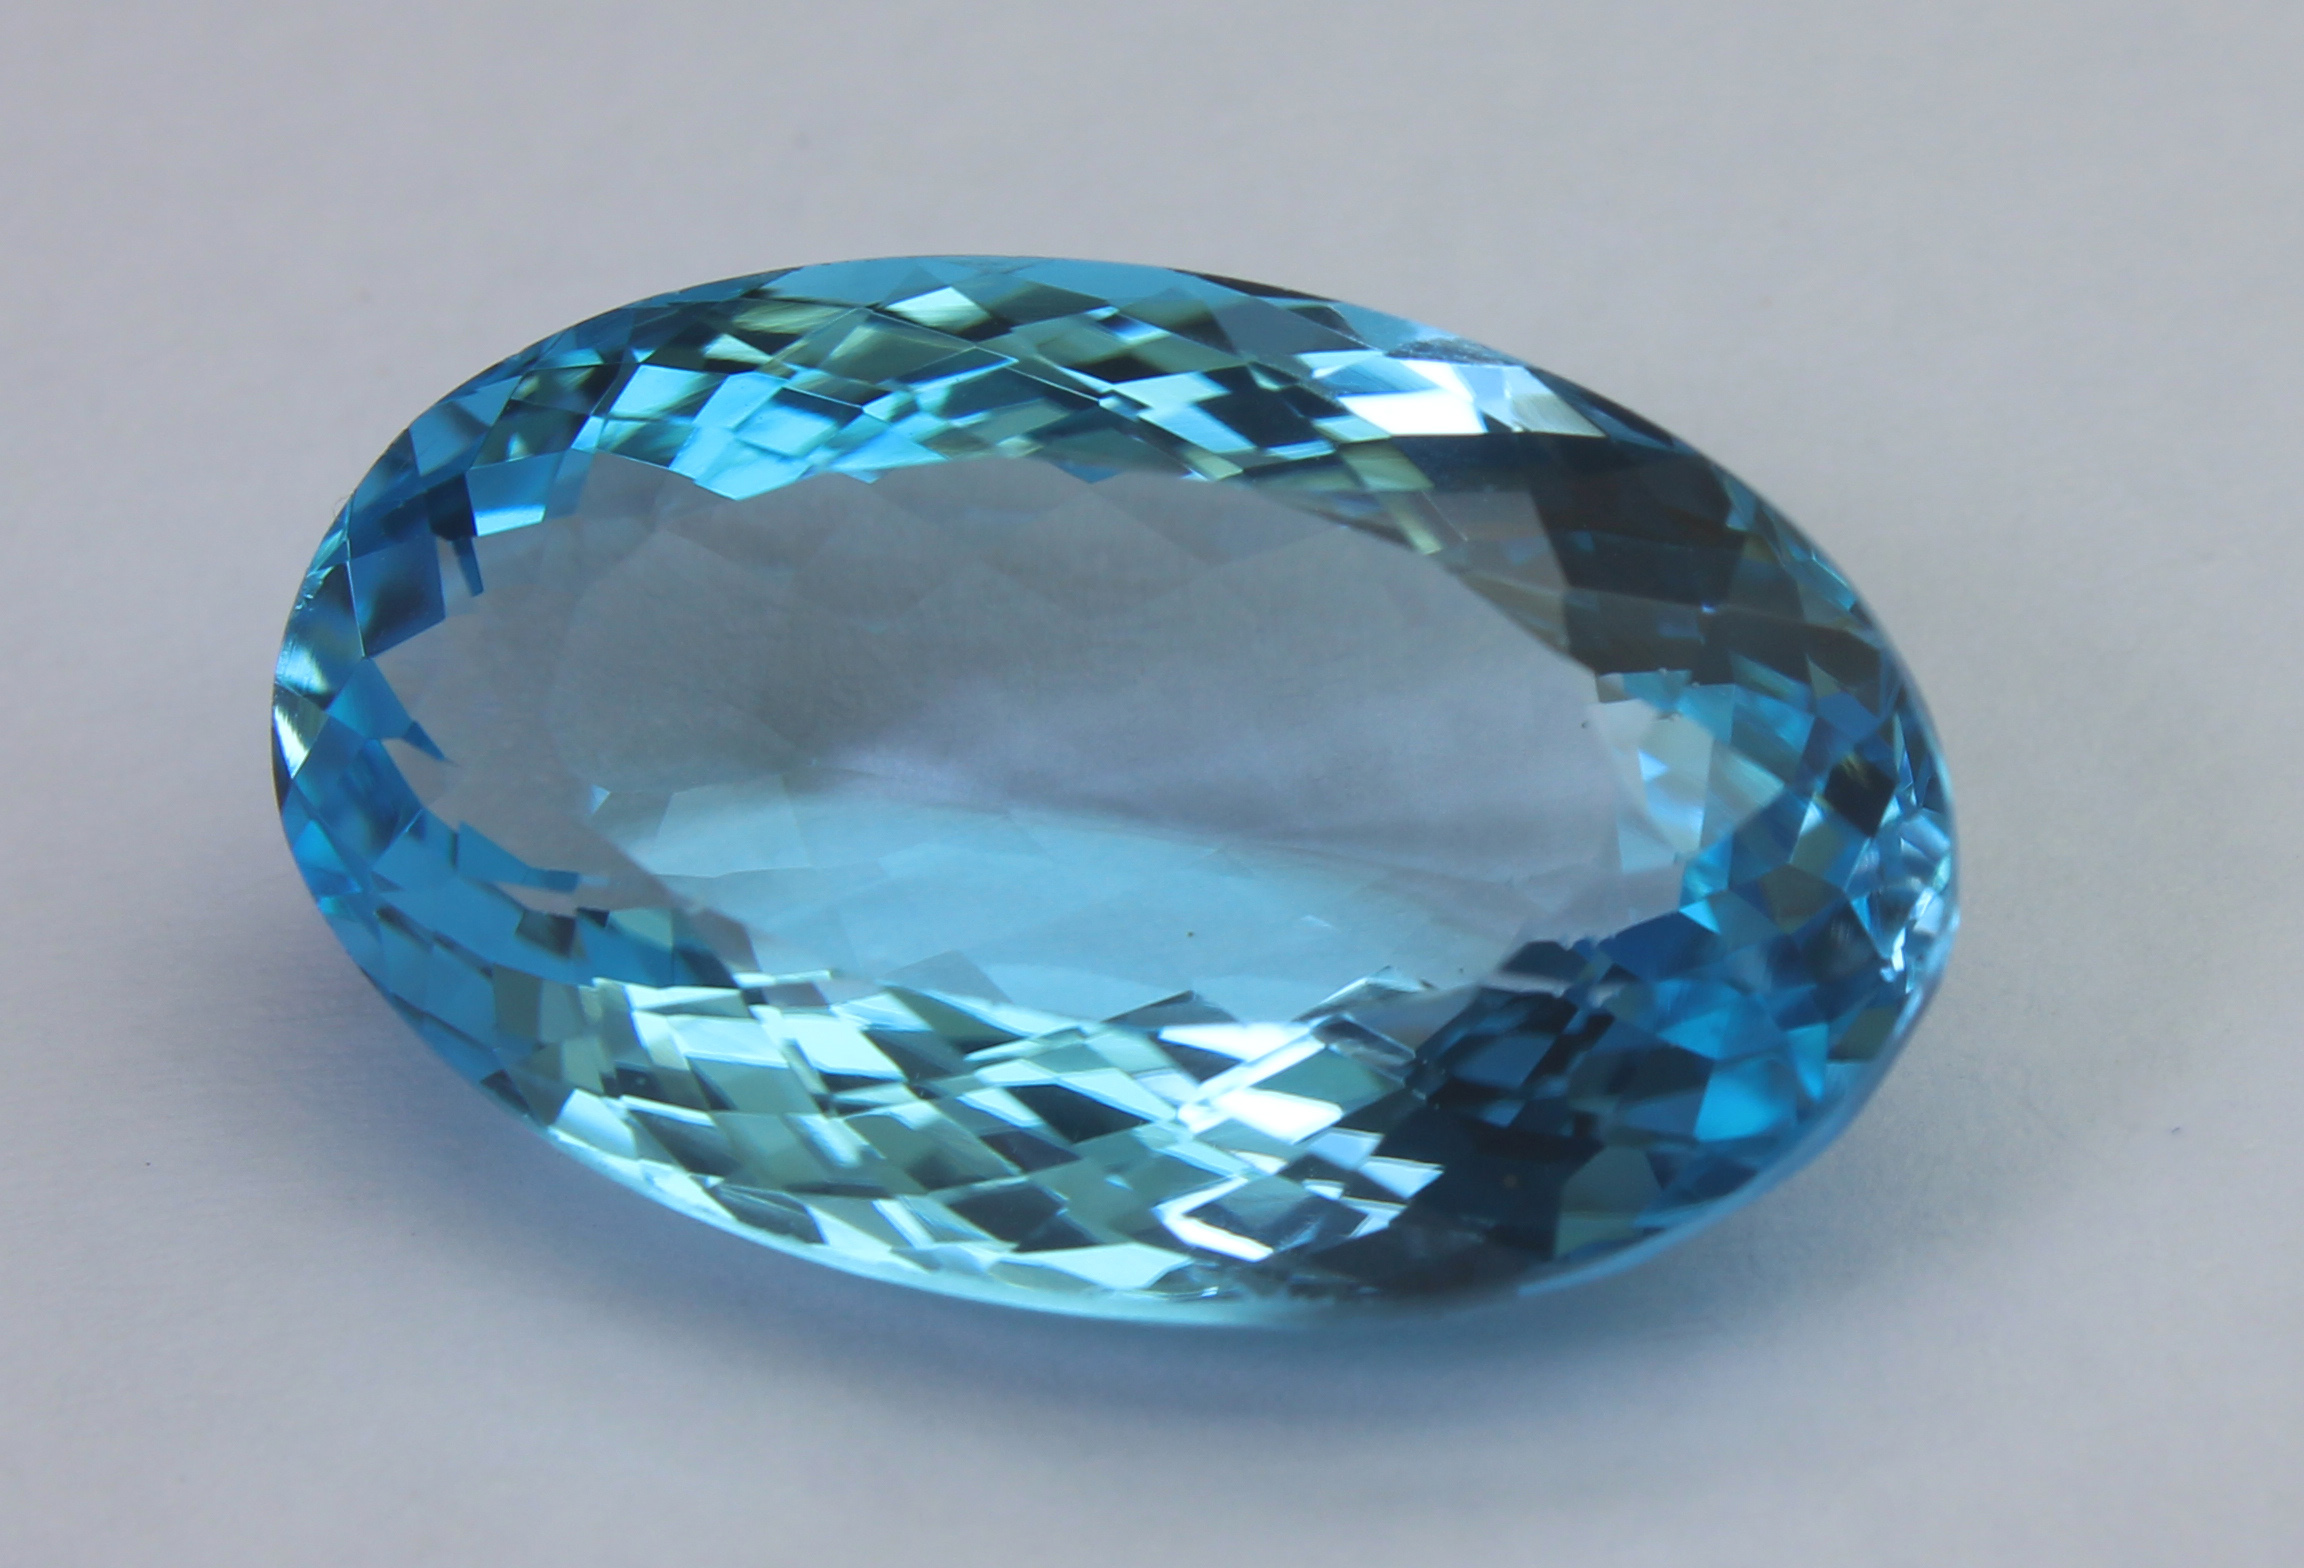 Topaz 19.25 Ct - Image 4 of 6